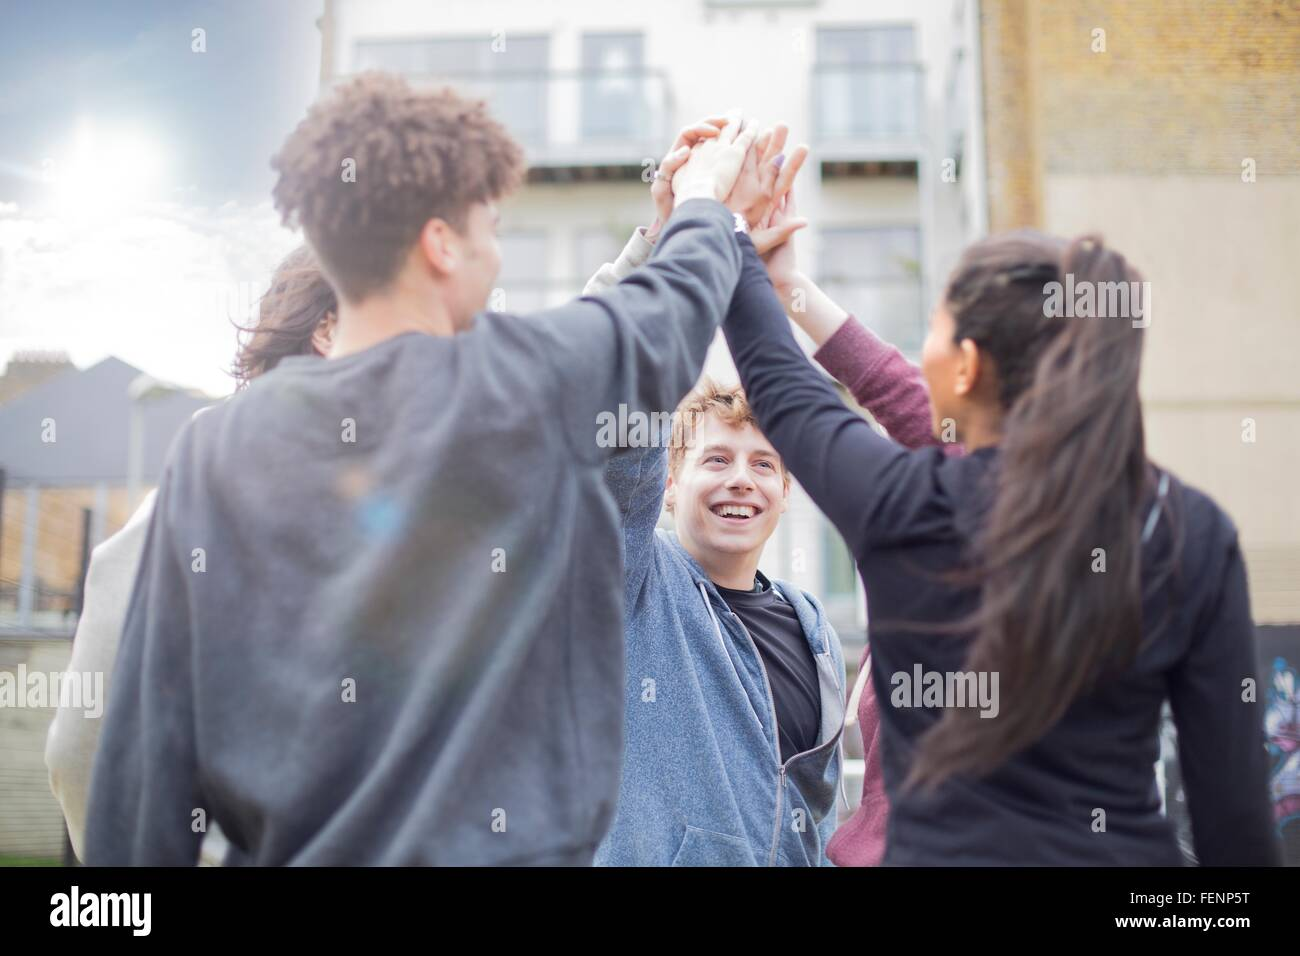 Group of adults, touching hands, outdoors - Stock Image